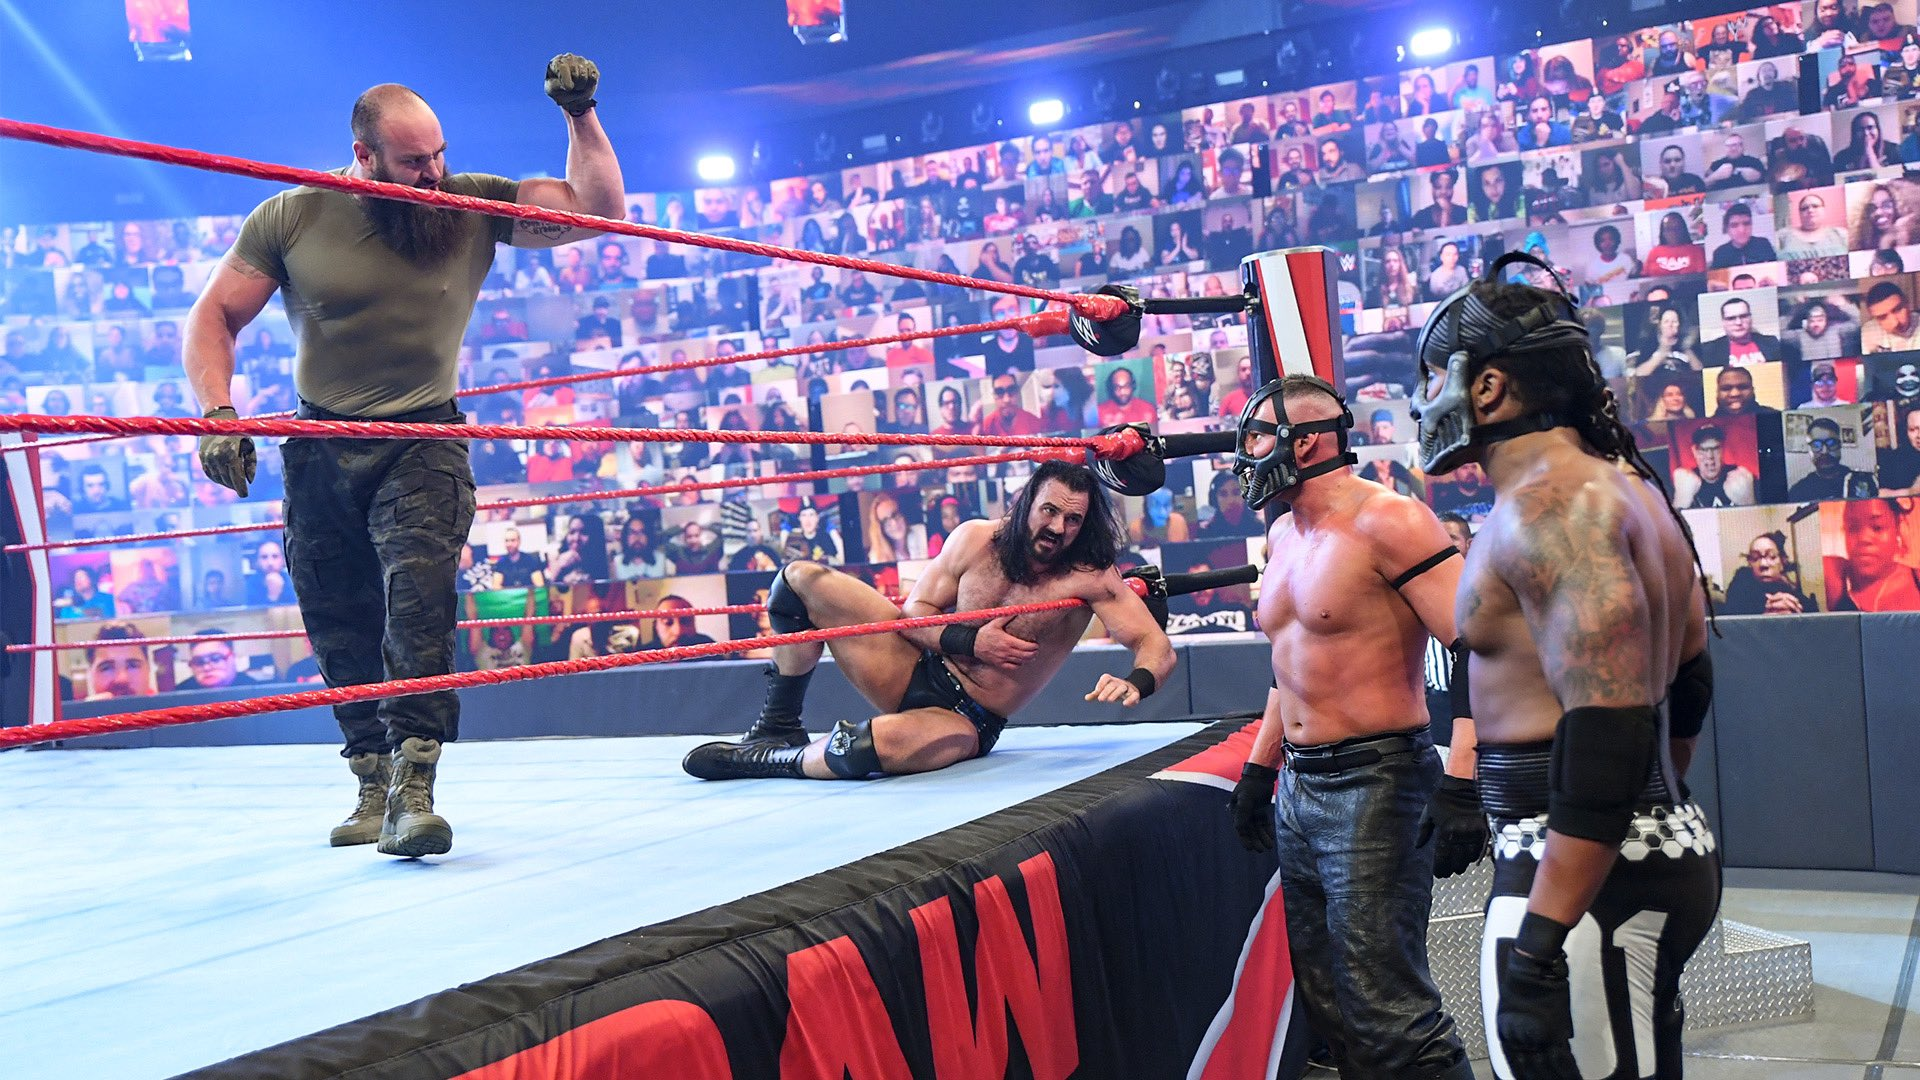 Braun Strowman suggested a new name for himself after beating up Mace and T-Bar on WWE RAW.